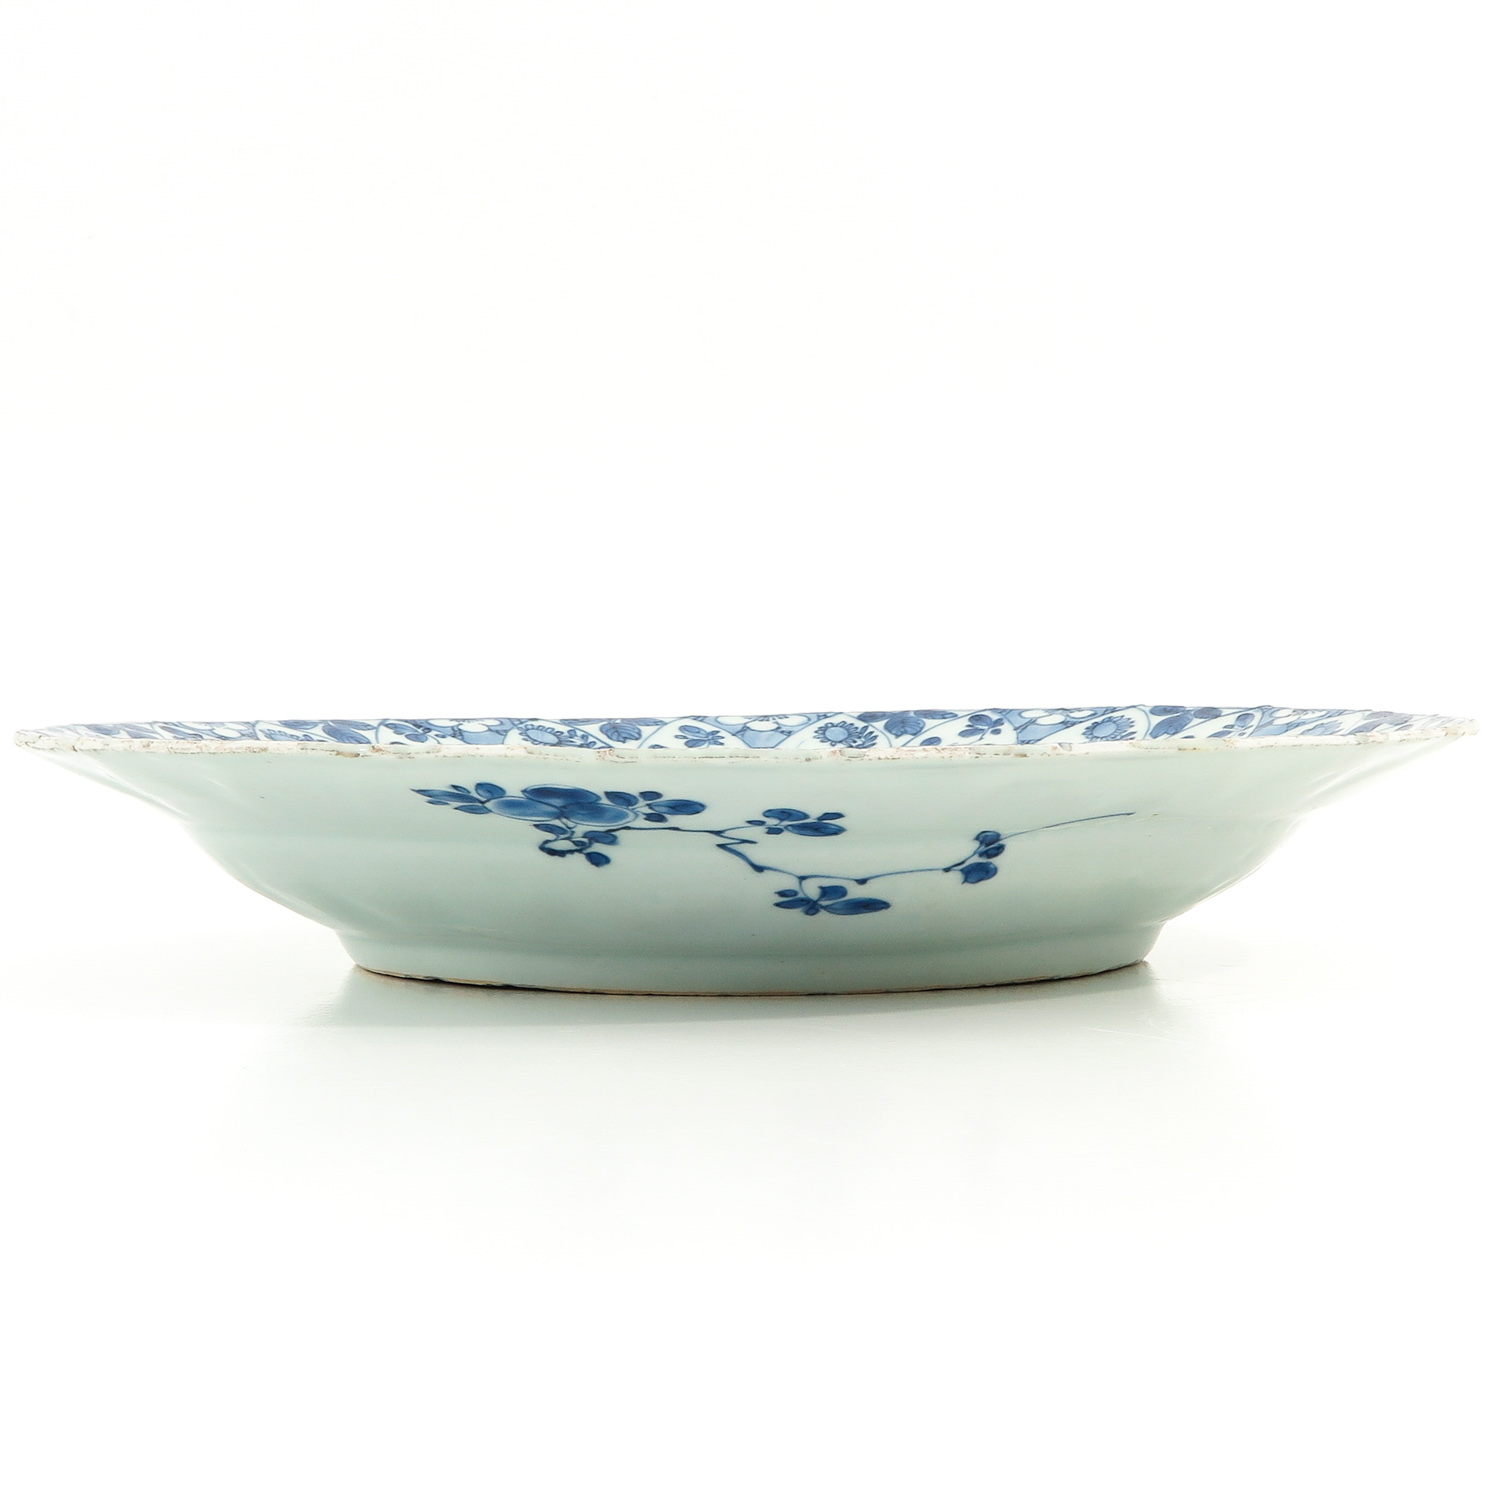 A Blue and White Charger - Image 4 of 8